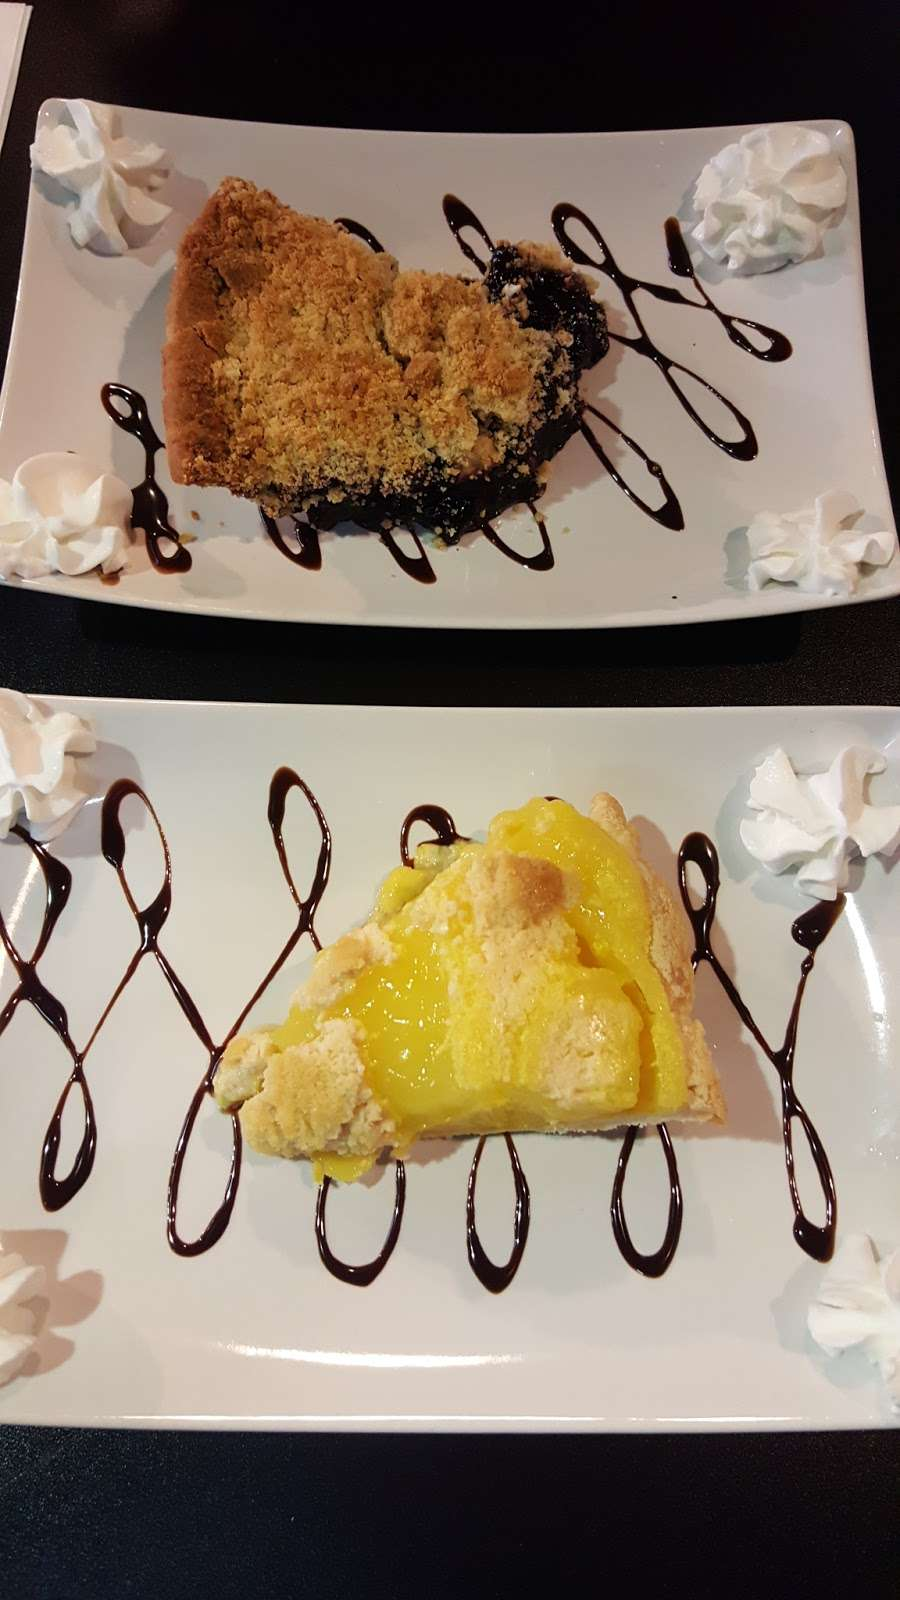 Pies To Die For Cafe - cafe  | Photo 7 of 10 | Address: 5 Broadway, Bangor, PA 18013, USA | Phone: (610) 340-4756